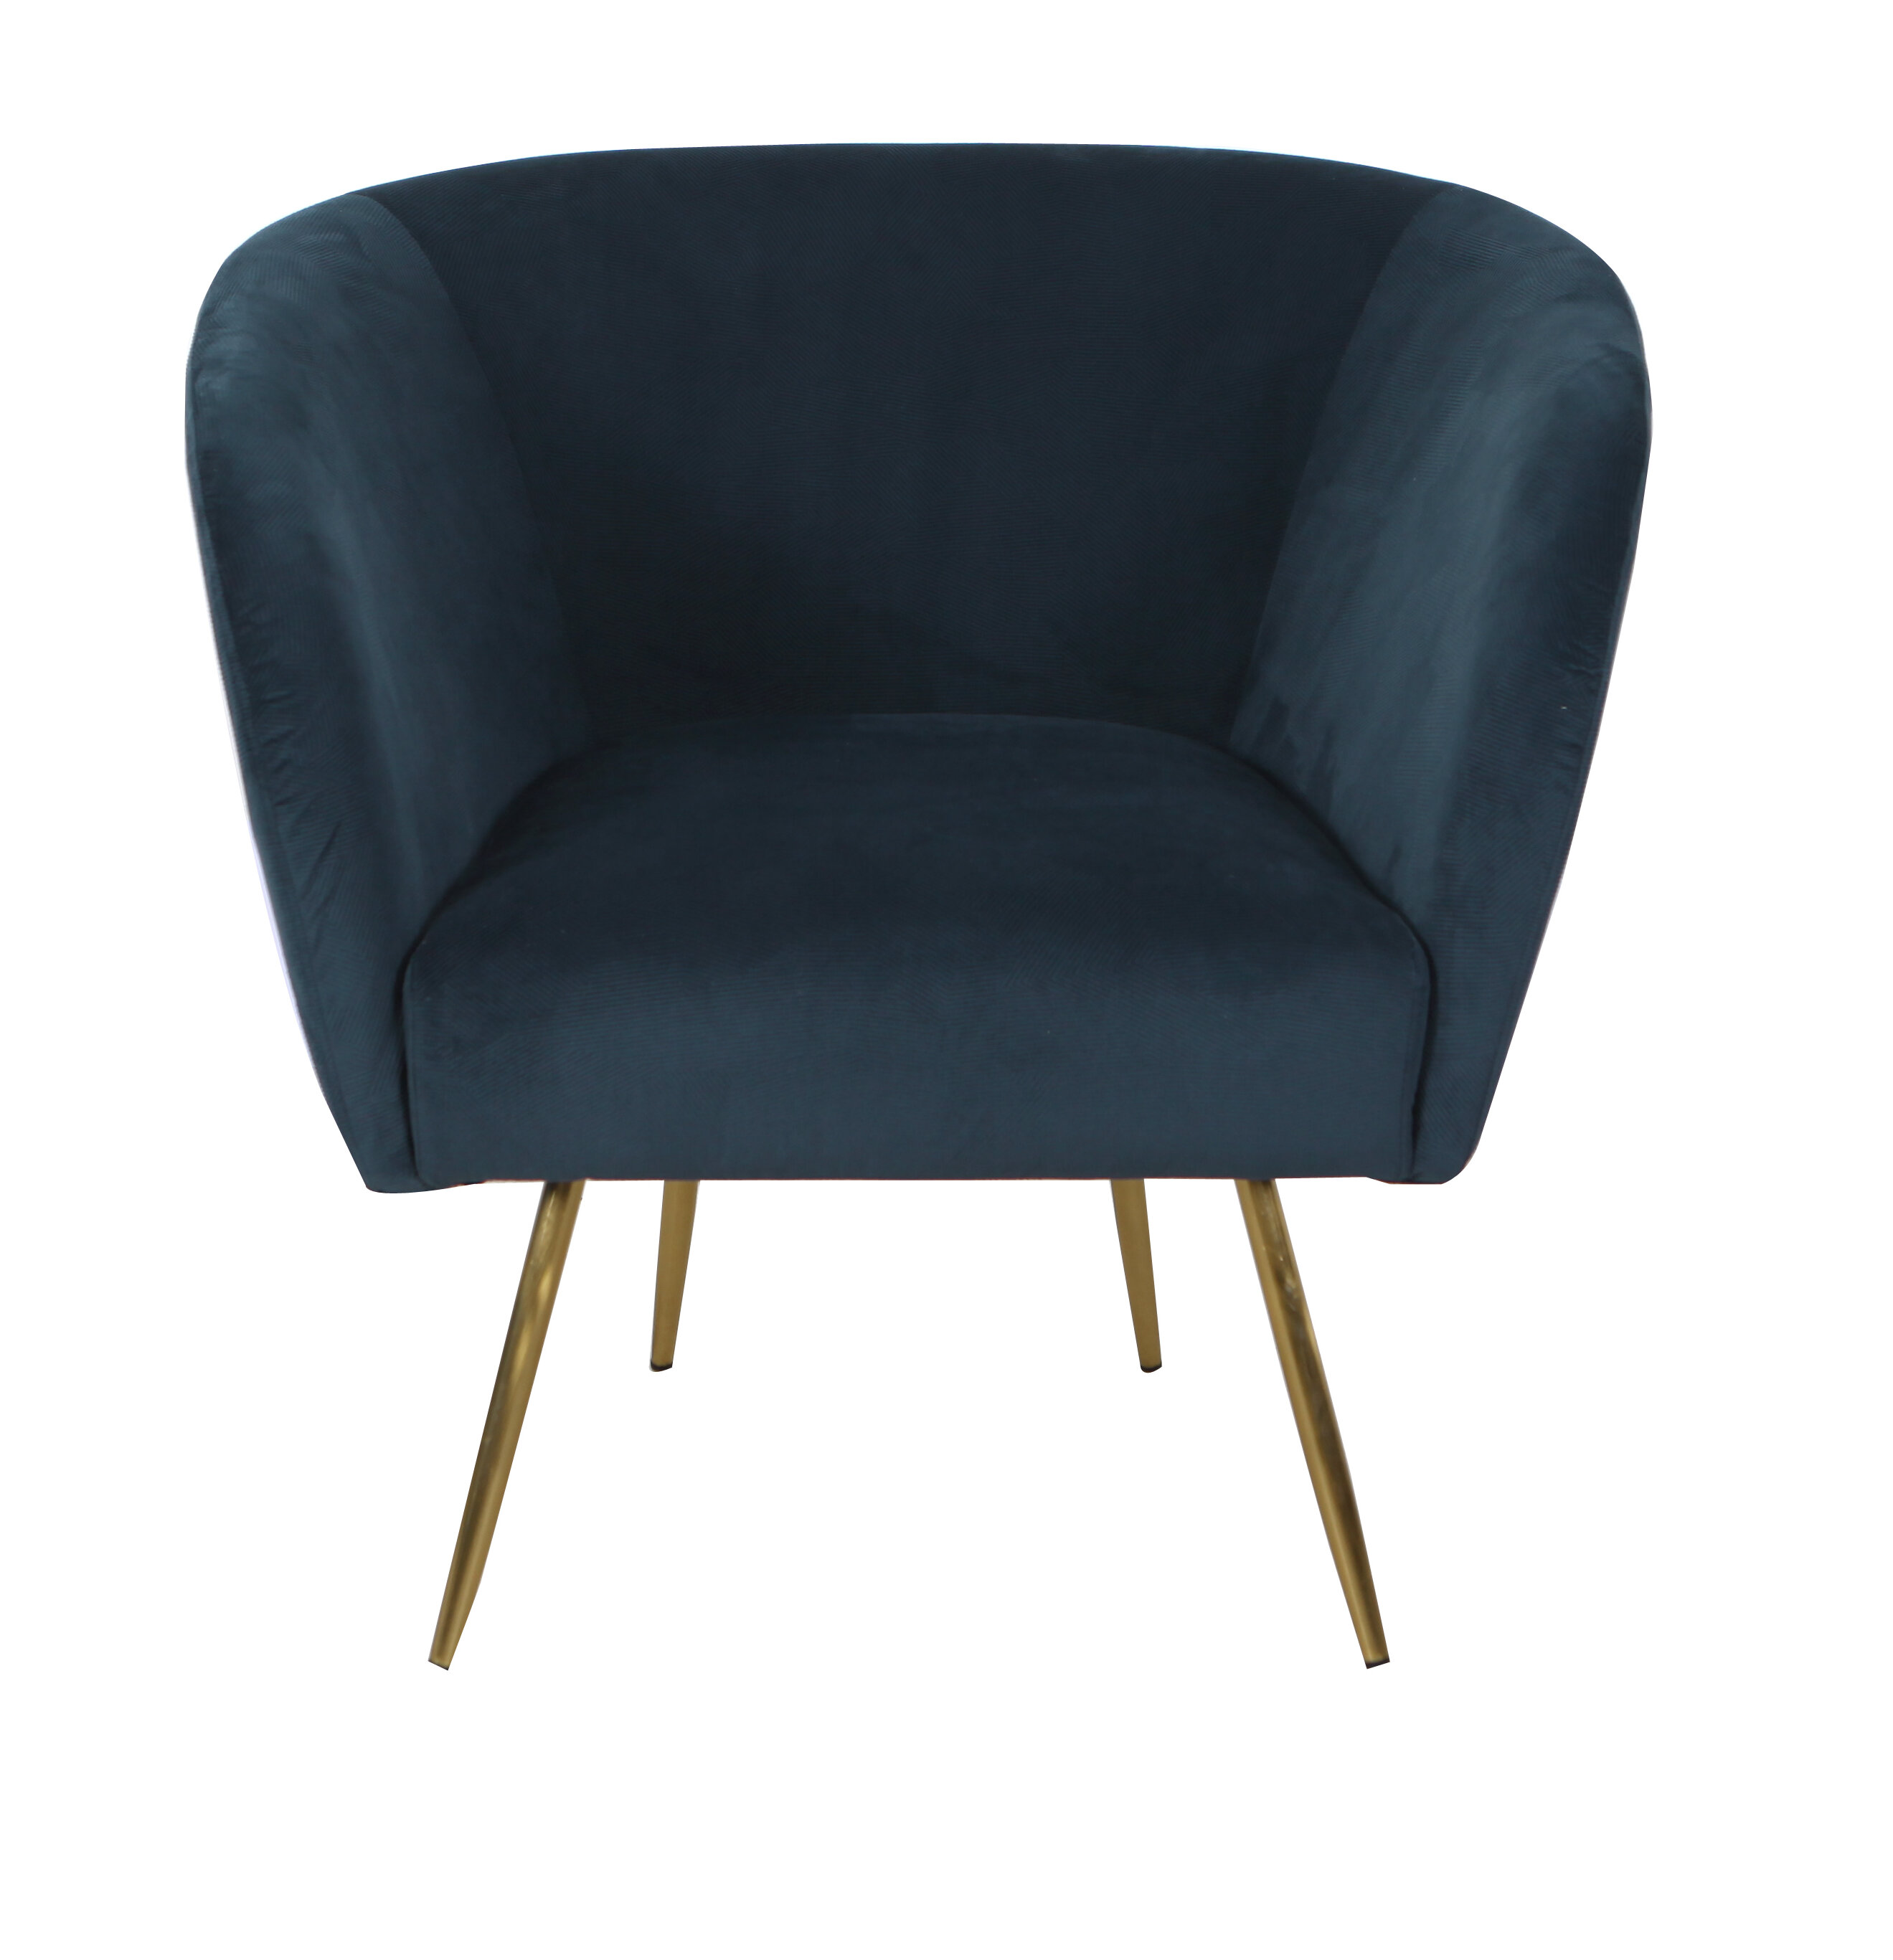 Peachy Industrial Metal Accent Chairs Youll Love In 2019 Wayfair Interior Design Ideas Gentotryabchikinfo